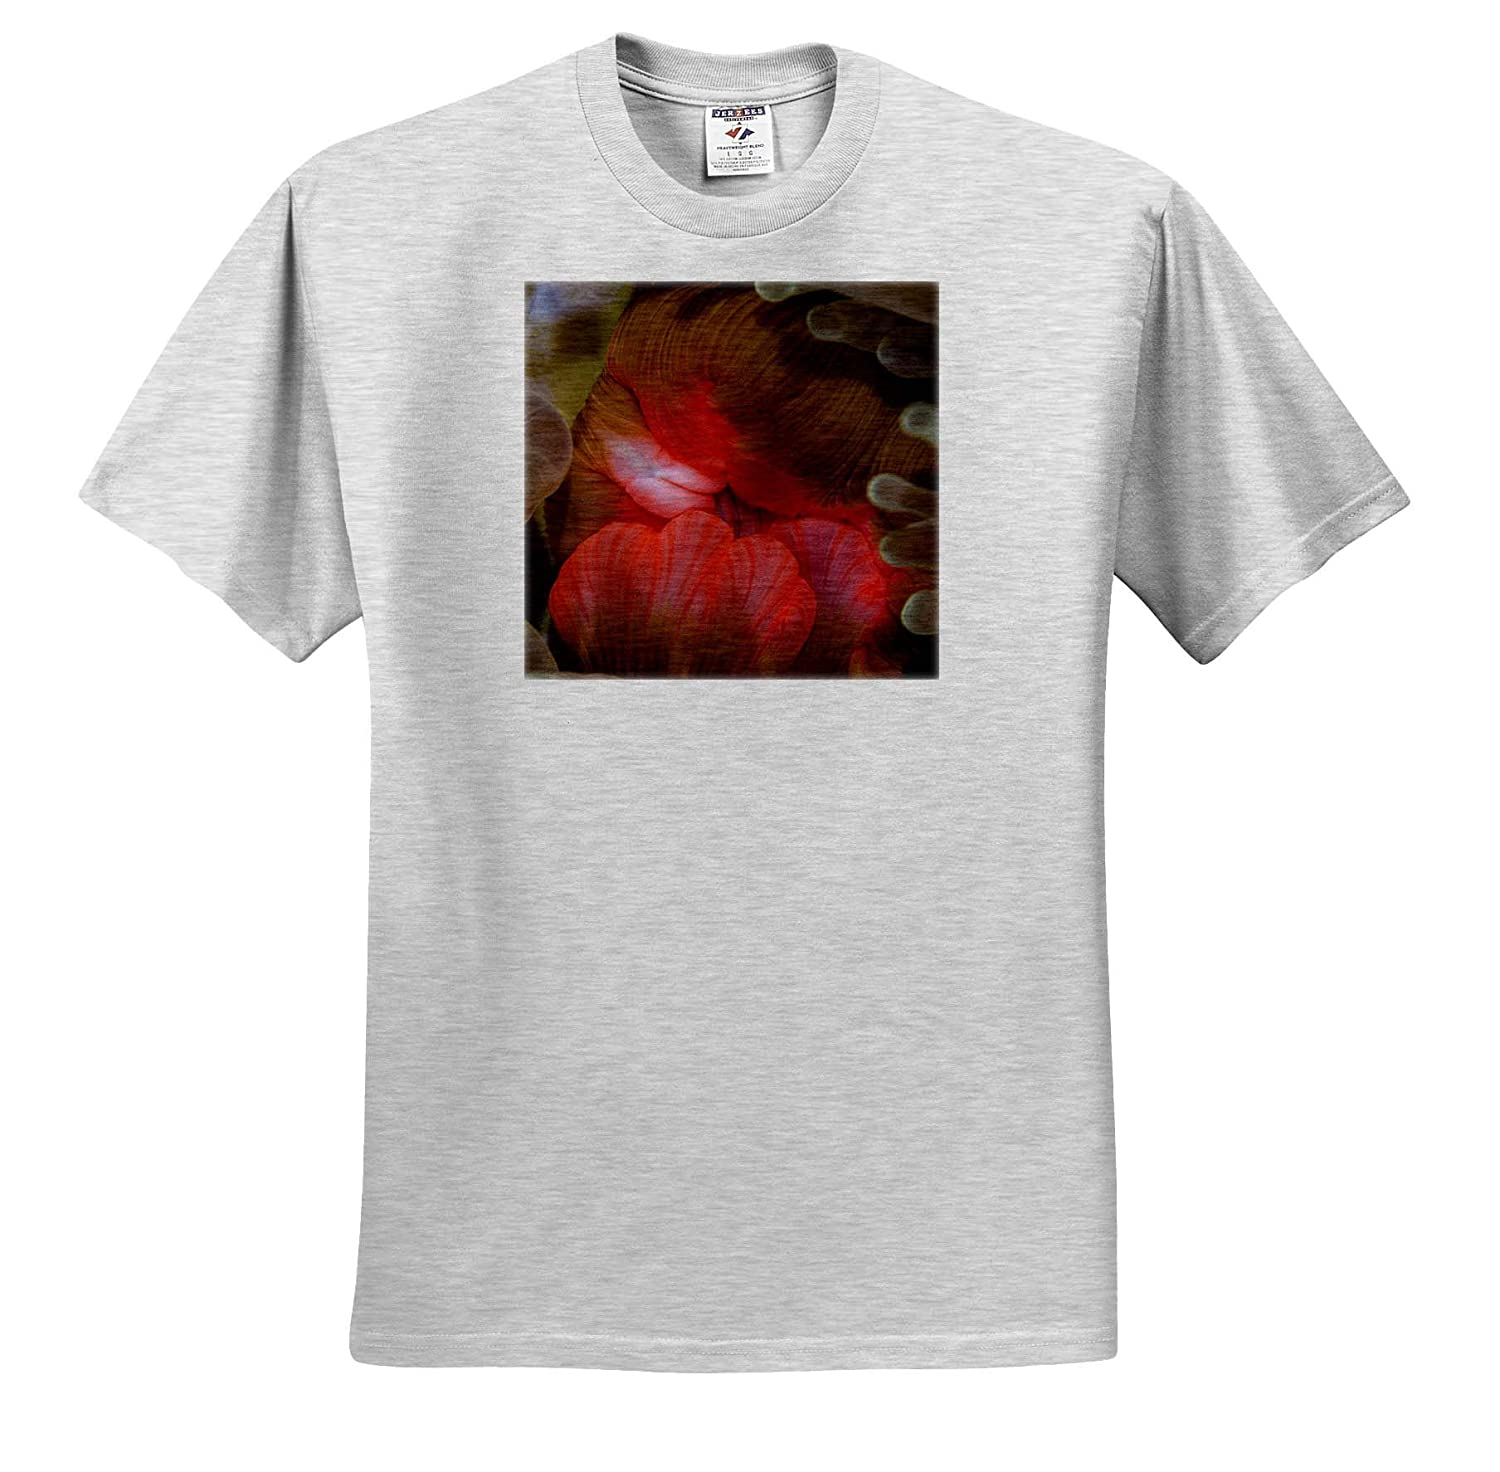 Underwater ts/_314017 3dRose Danita Delimont Close-up of Anemone Mouth - Adult T-Shirt XL Fiji